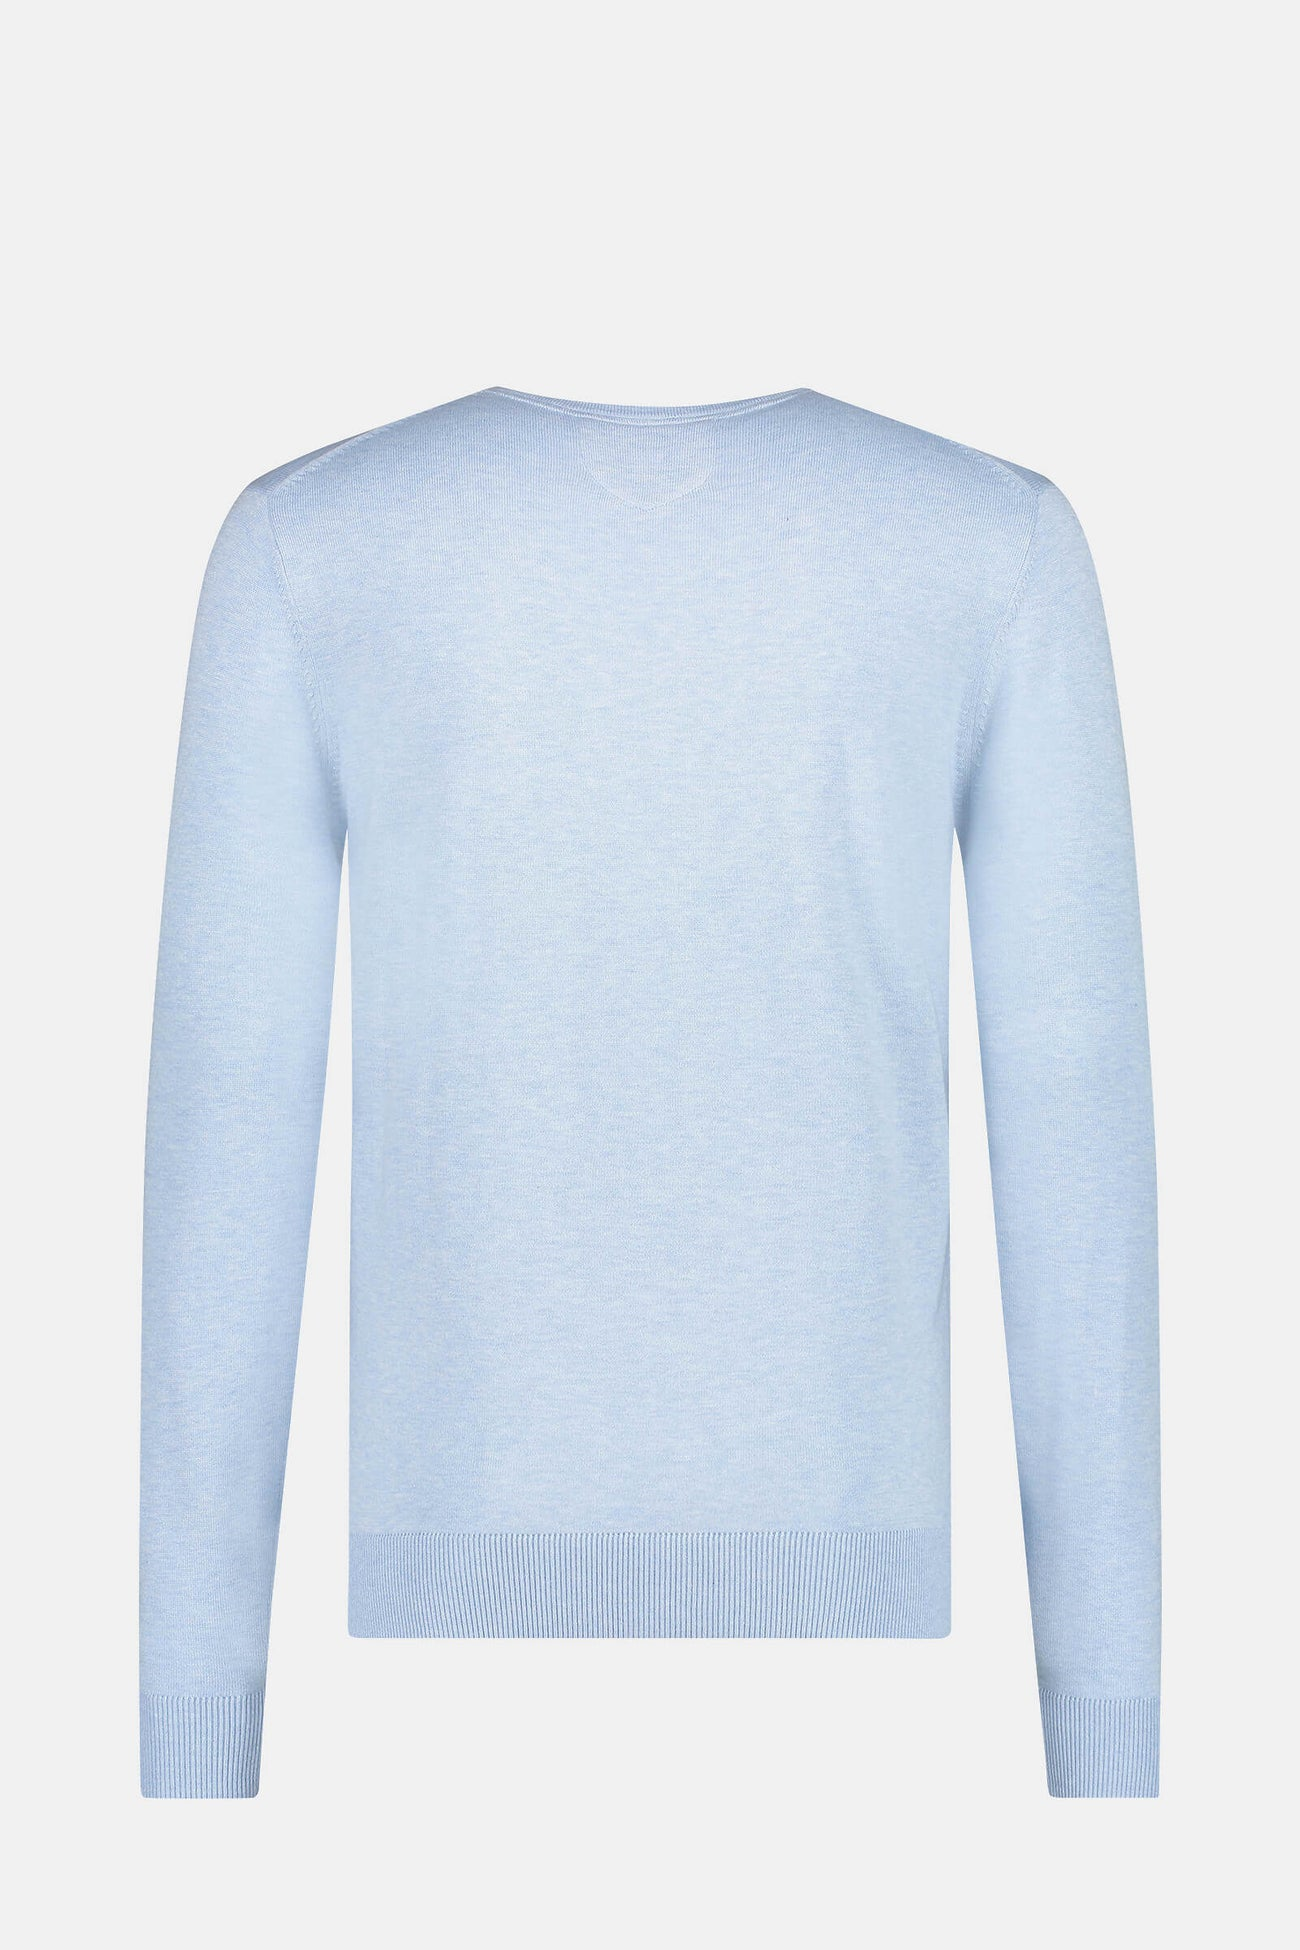 Crew neck sweater in cotton silk blend